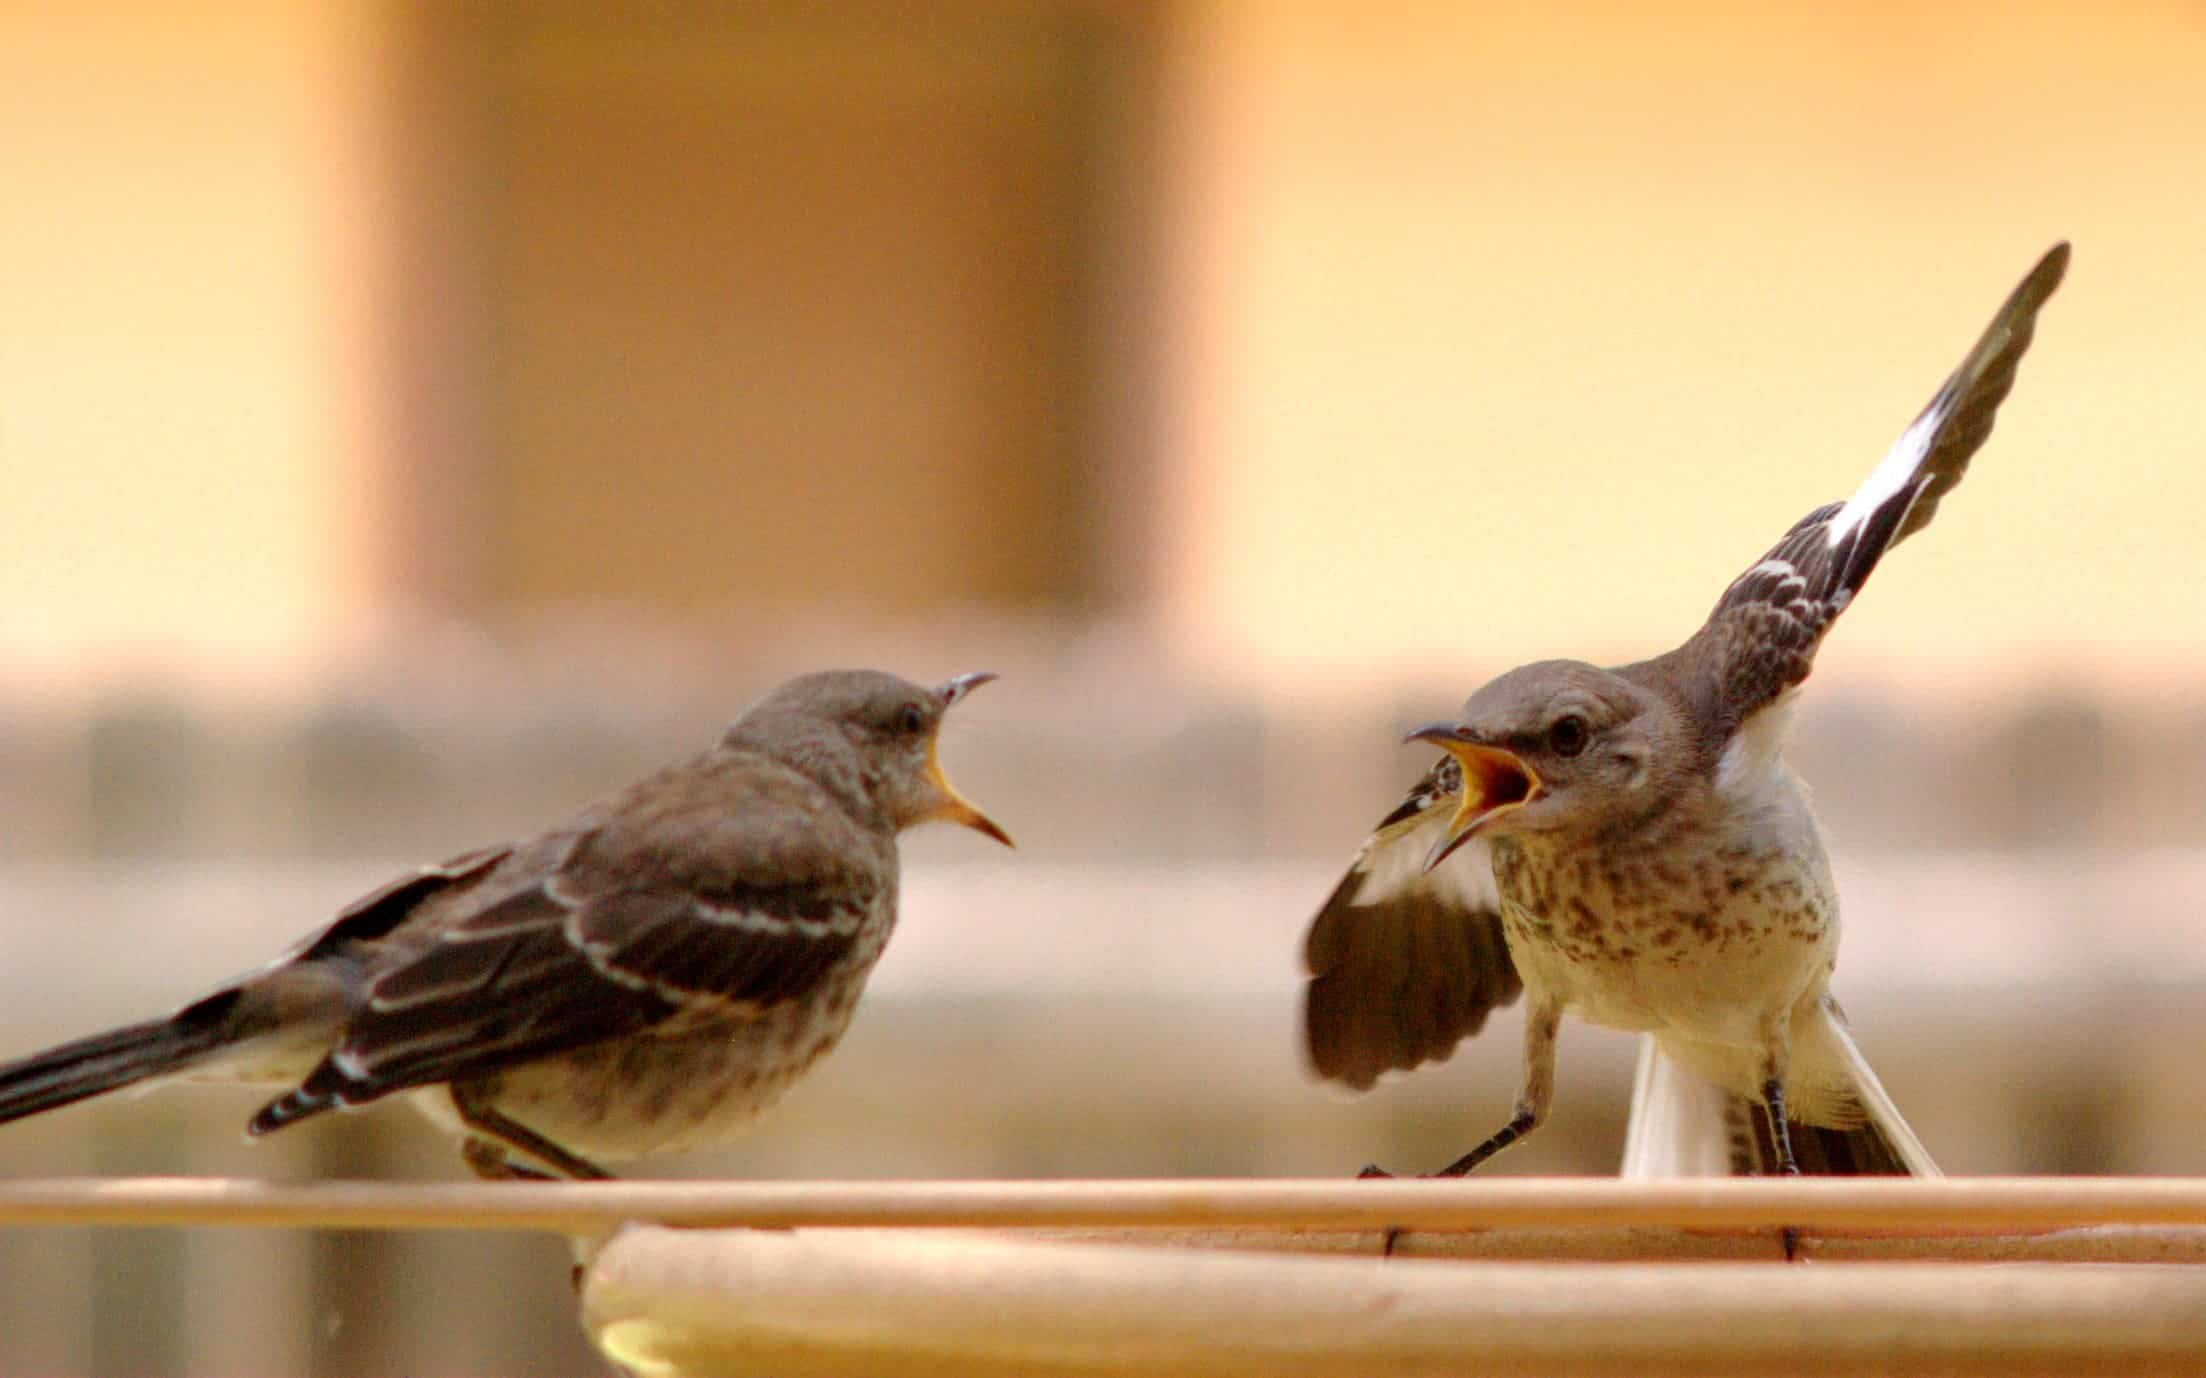 Mocking birds having an argument. Credit: Wikimedia Commons